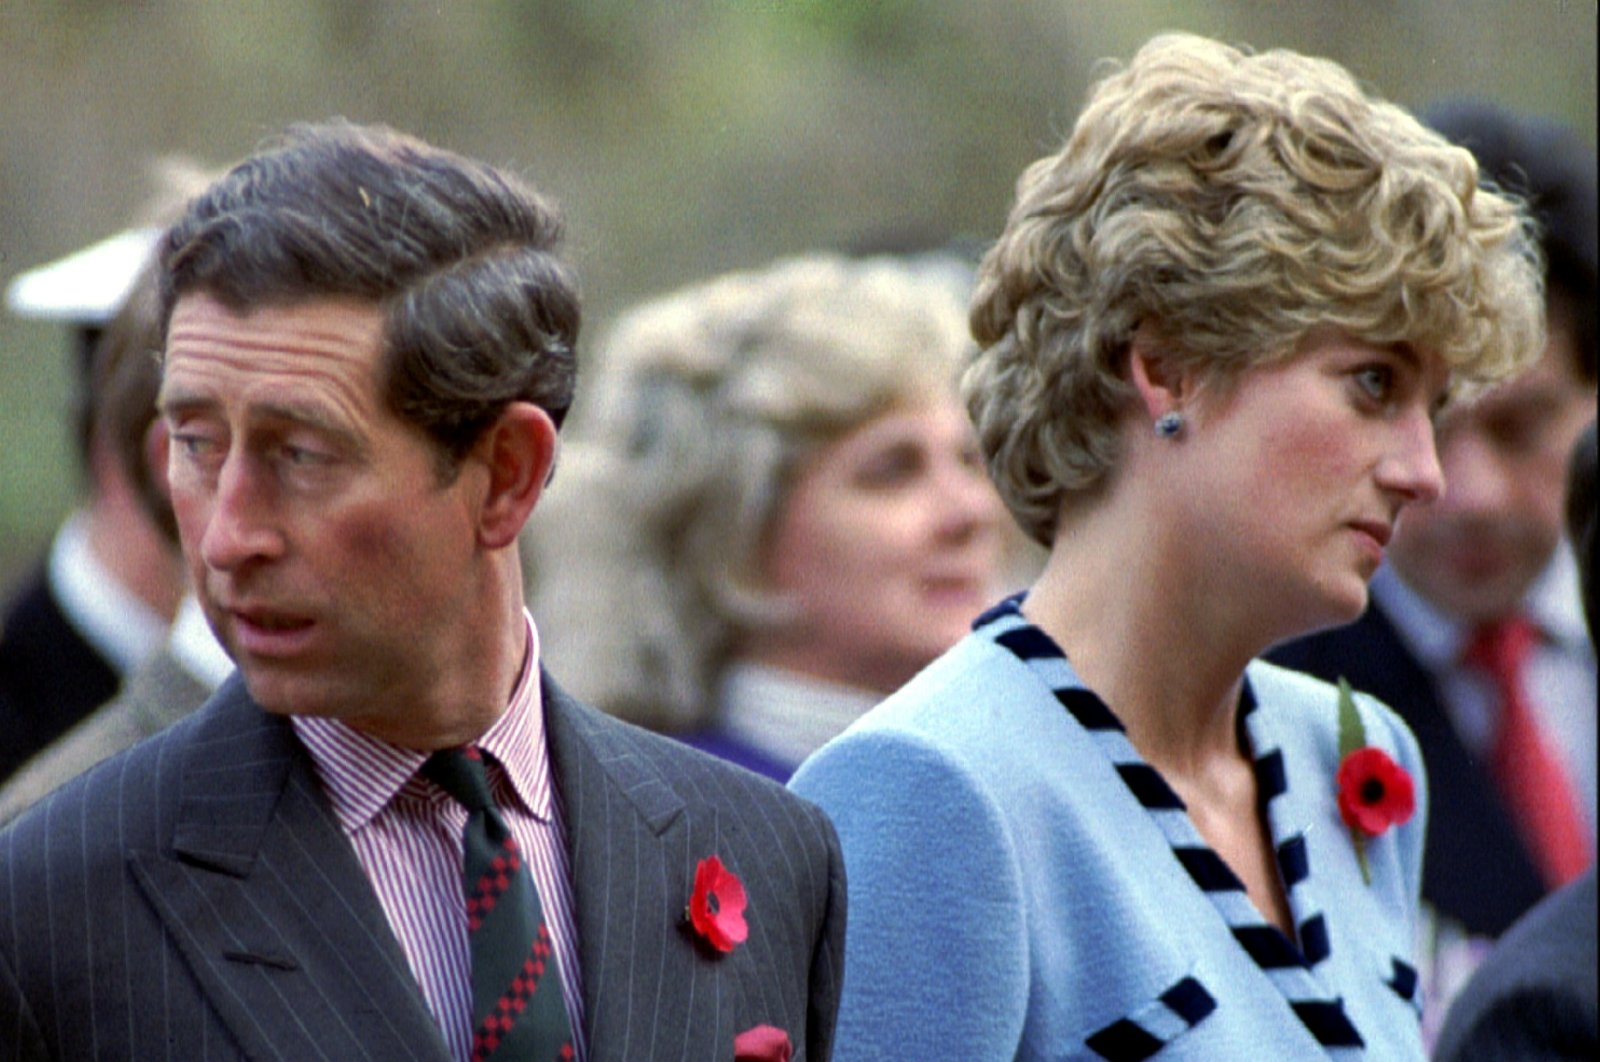 Princess Diana and Prince Charles look in different directions during a service held to commemorate the 59 British soldiers killed in action during the Korean war, Nov. 3, 1992. (Reuters Photo)